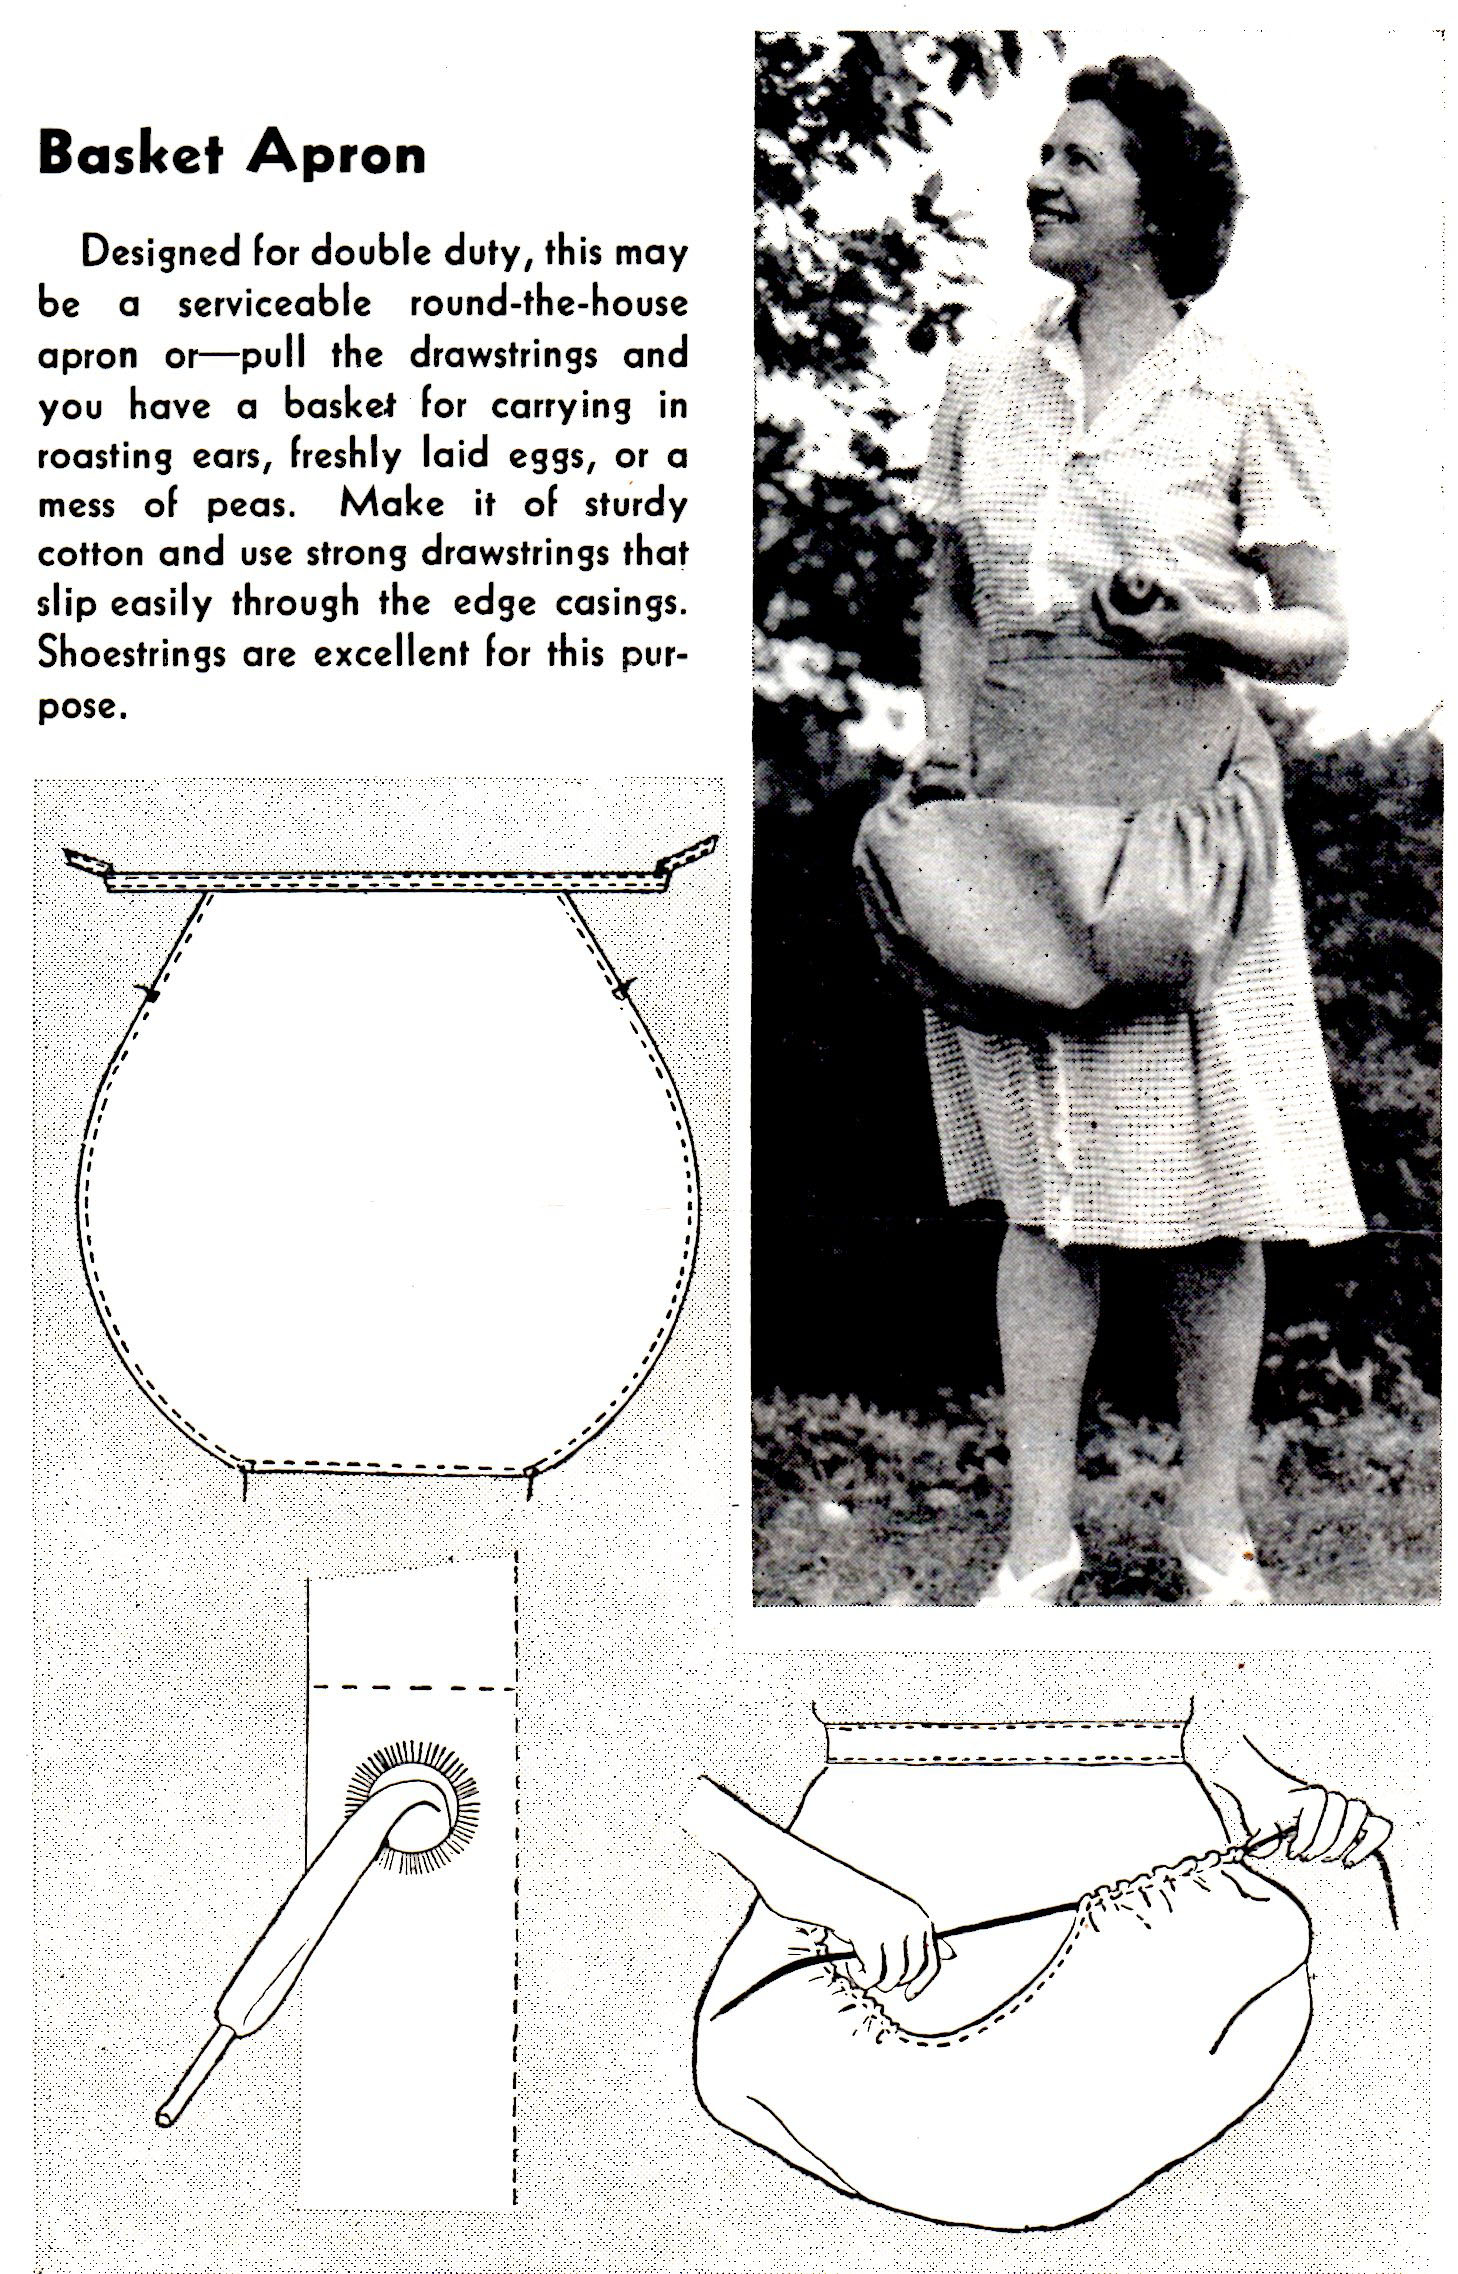 Free Basket Apron Pattern to Sew for use in your Home and